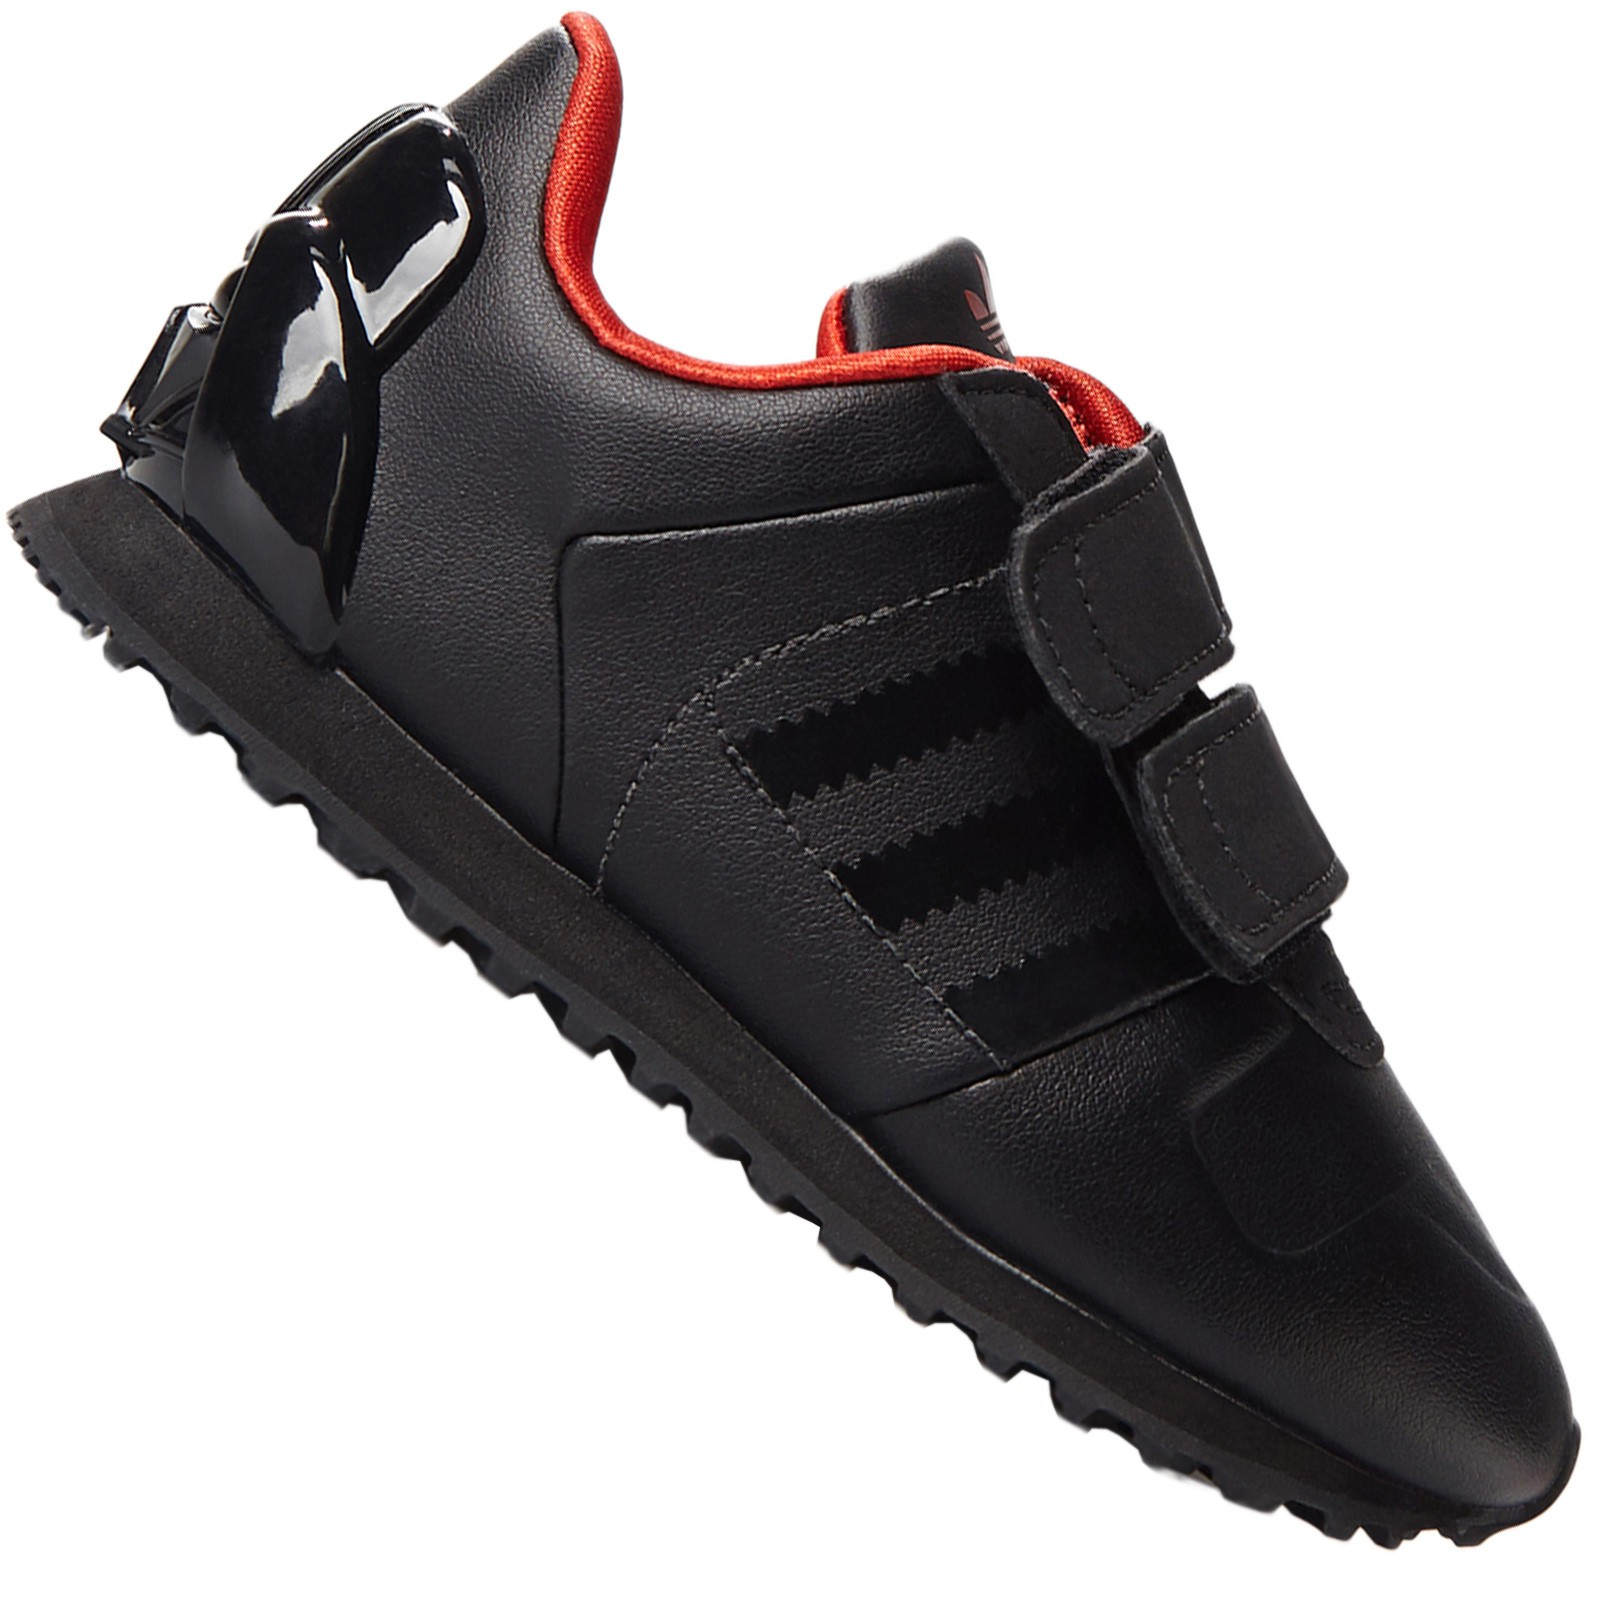 3a149137d15caa ADIDAS ORIGINALS ZX 700 KINDER STAR WARS DARTH VADER SNEAKER SCHUHE ...